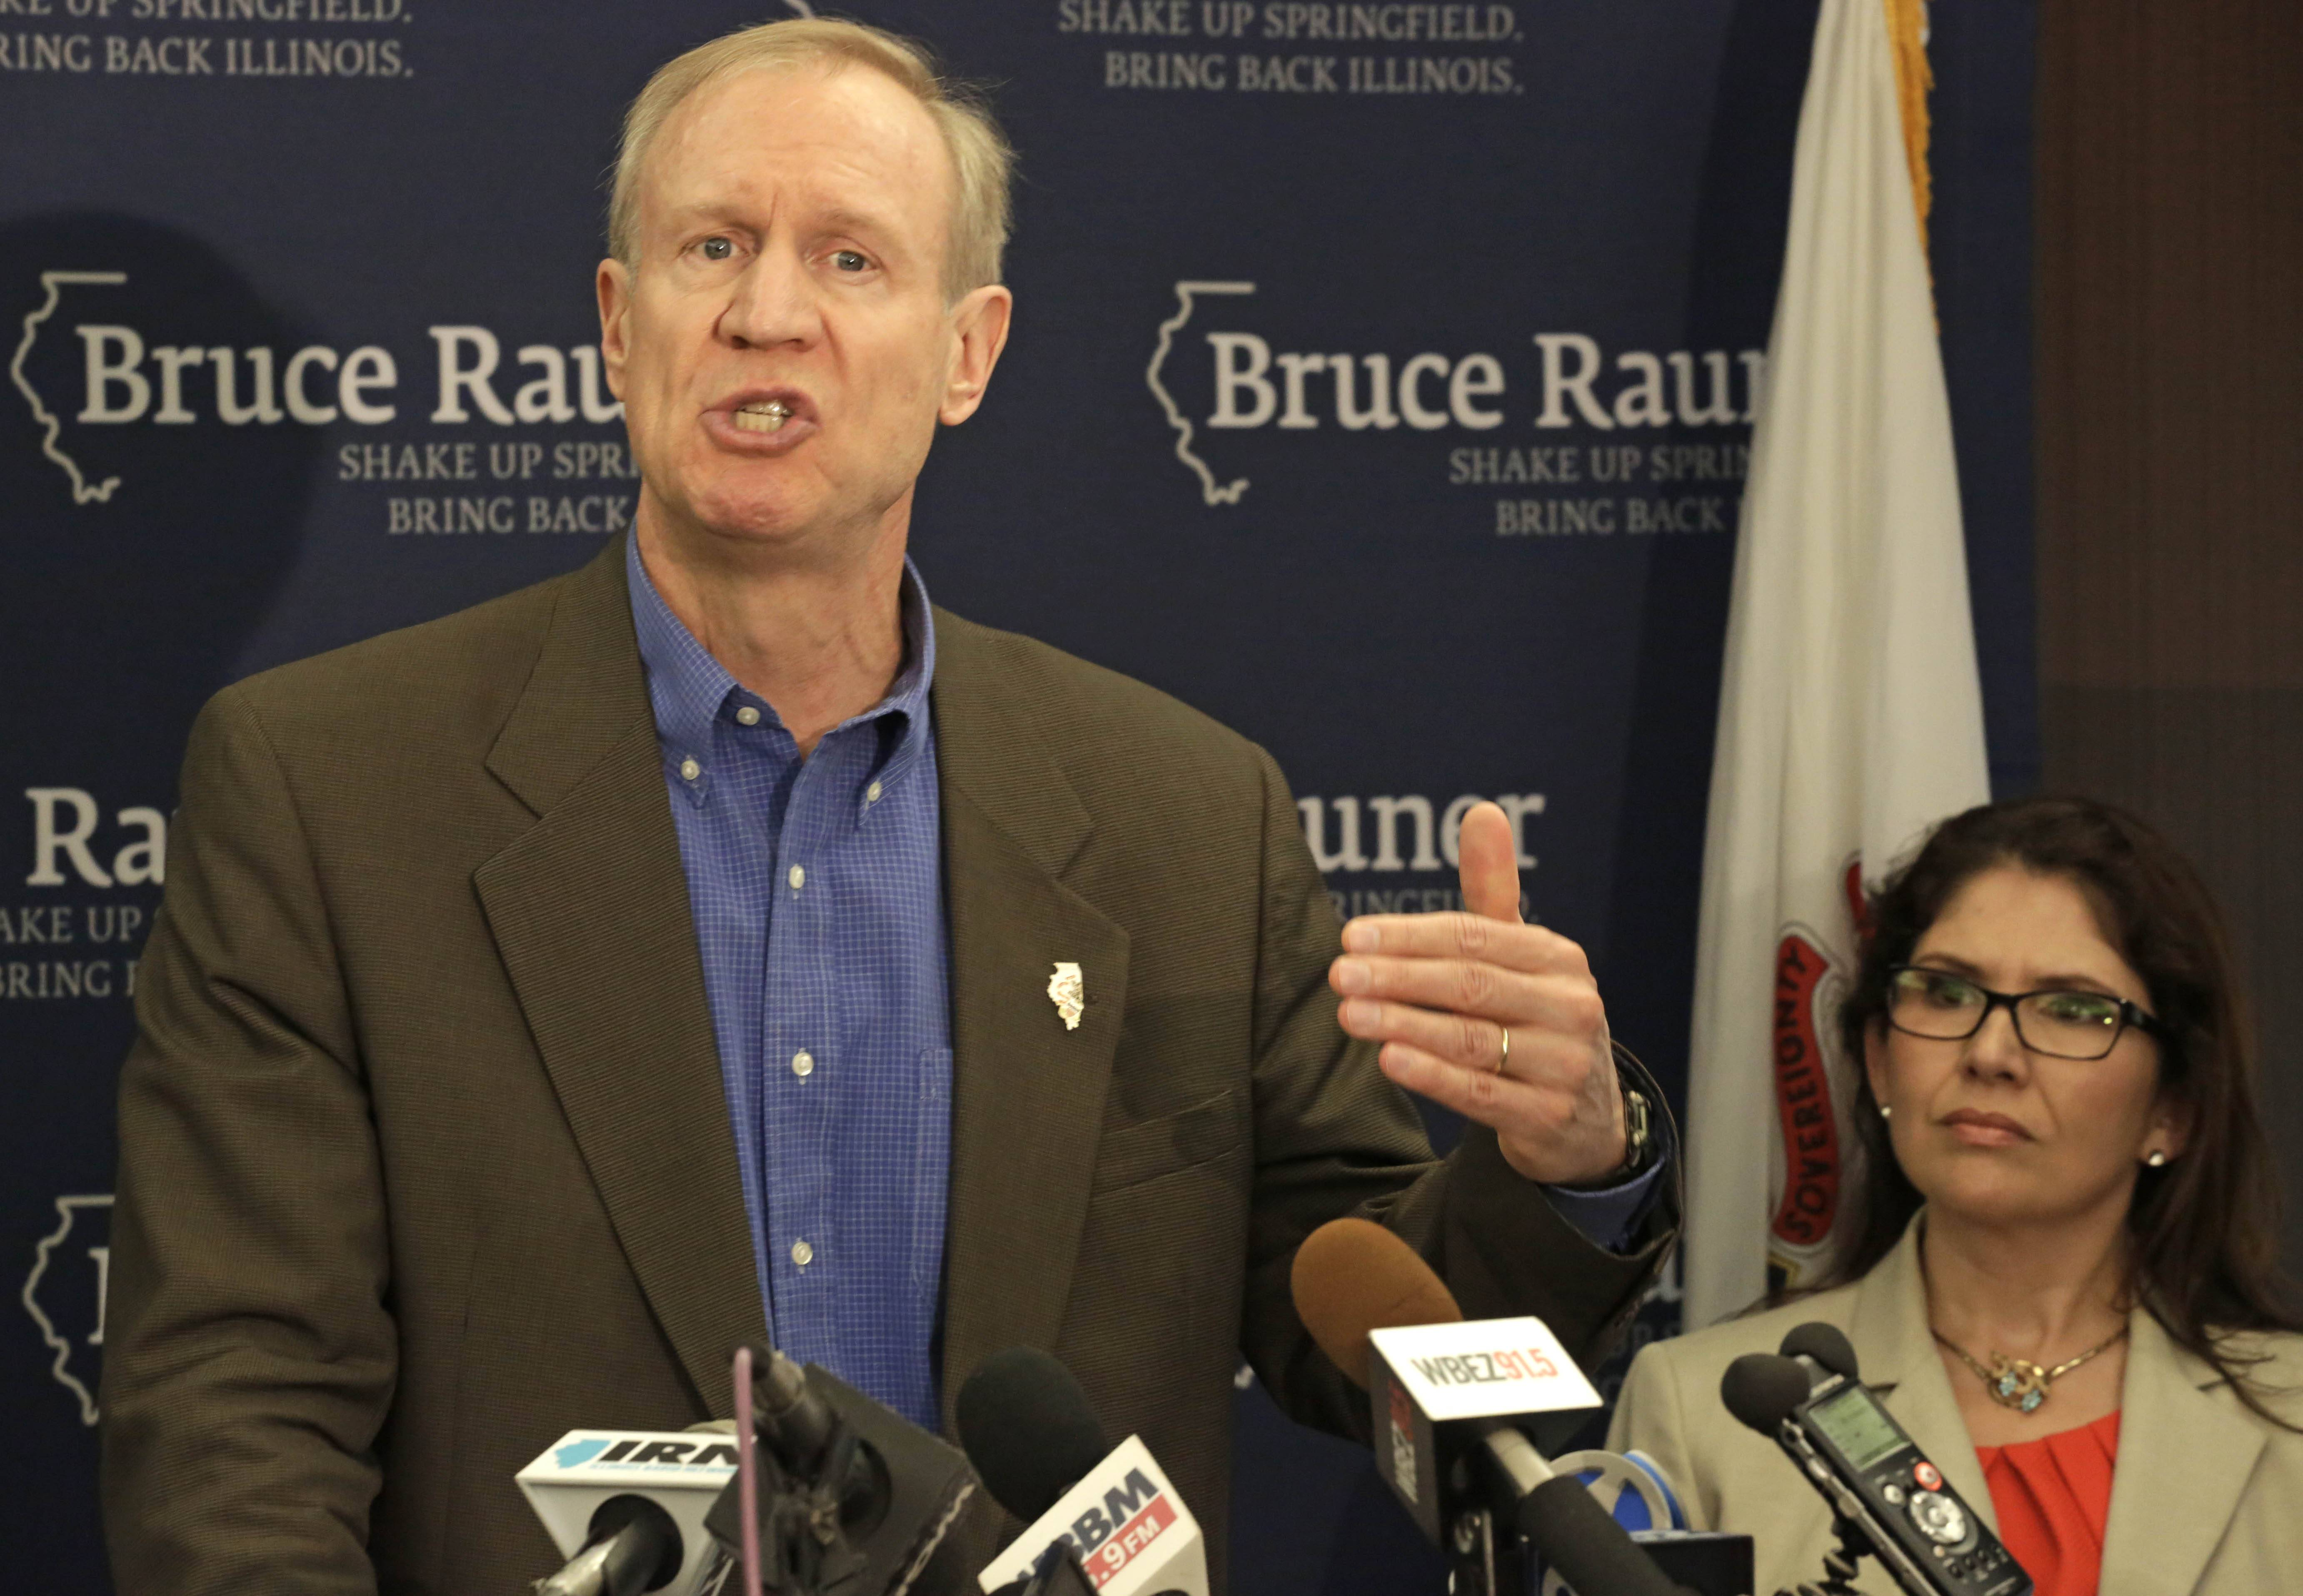 Rauner details cost-cutting ideas for Illinois